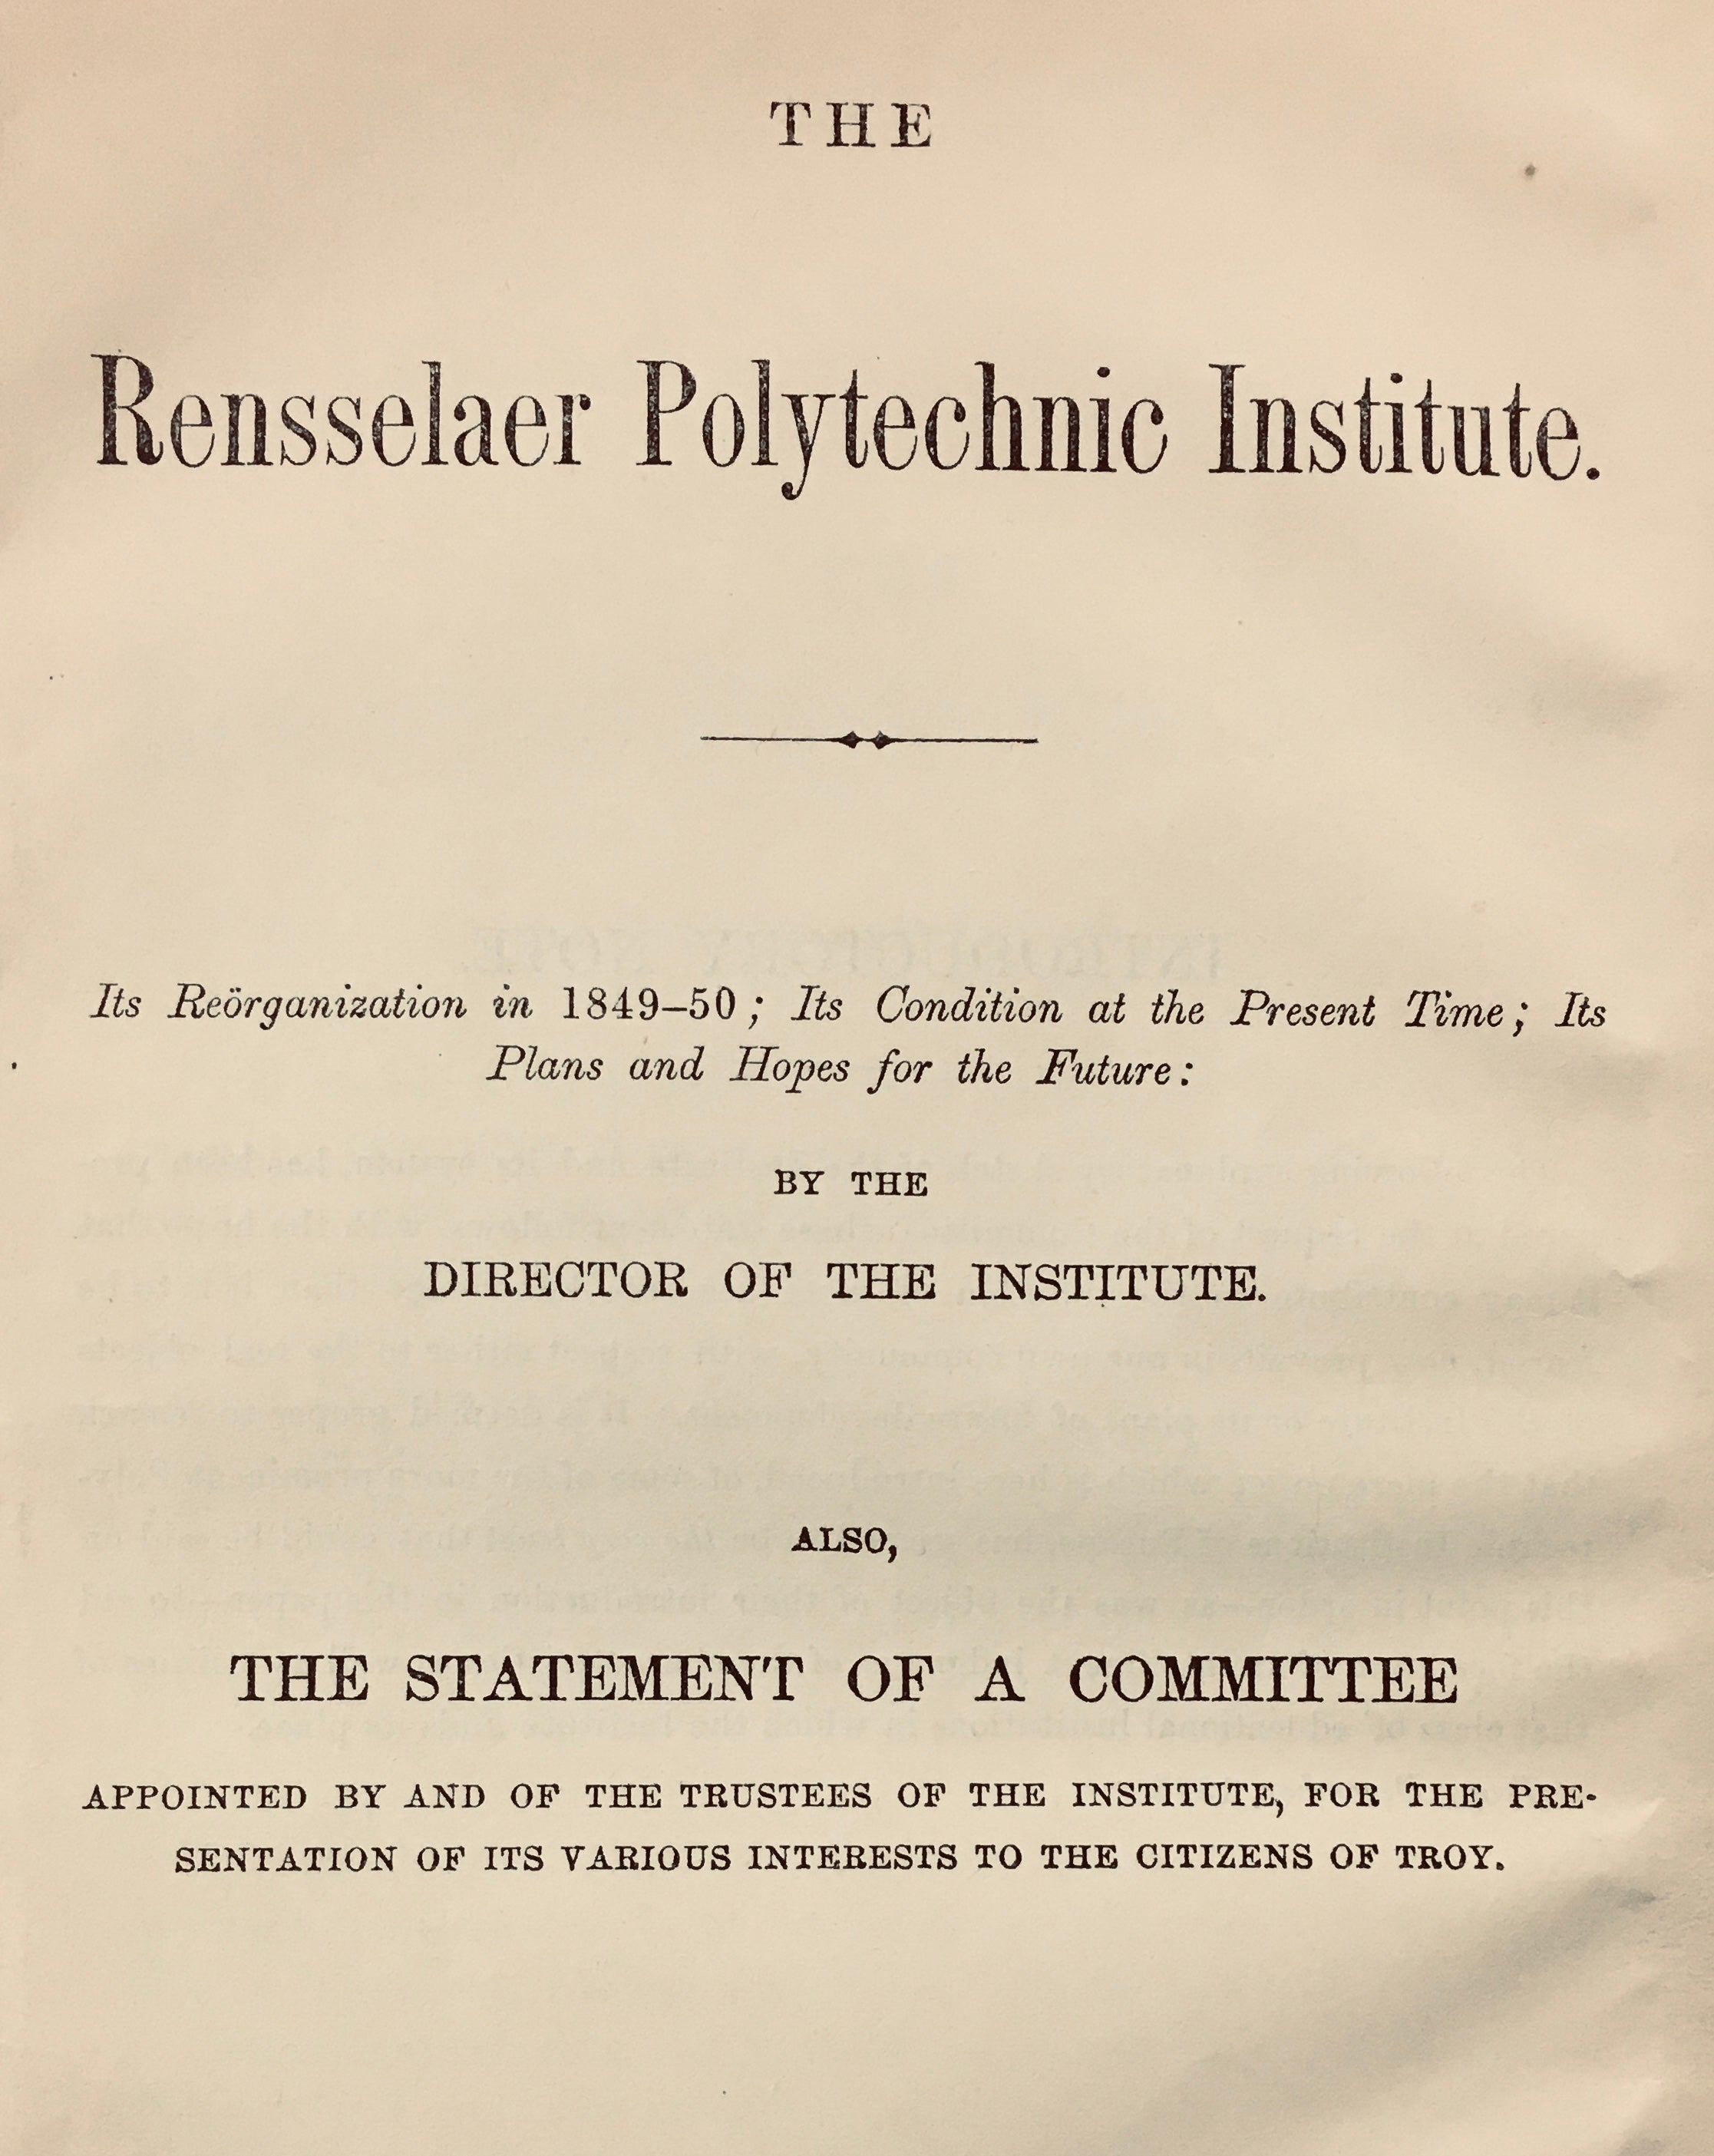 Cover page from The Rensselaer Polytechnic Institute Reorganization in 1849-50